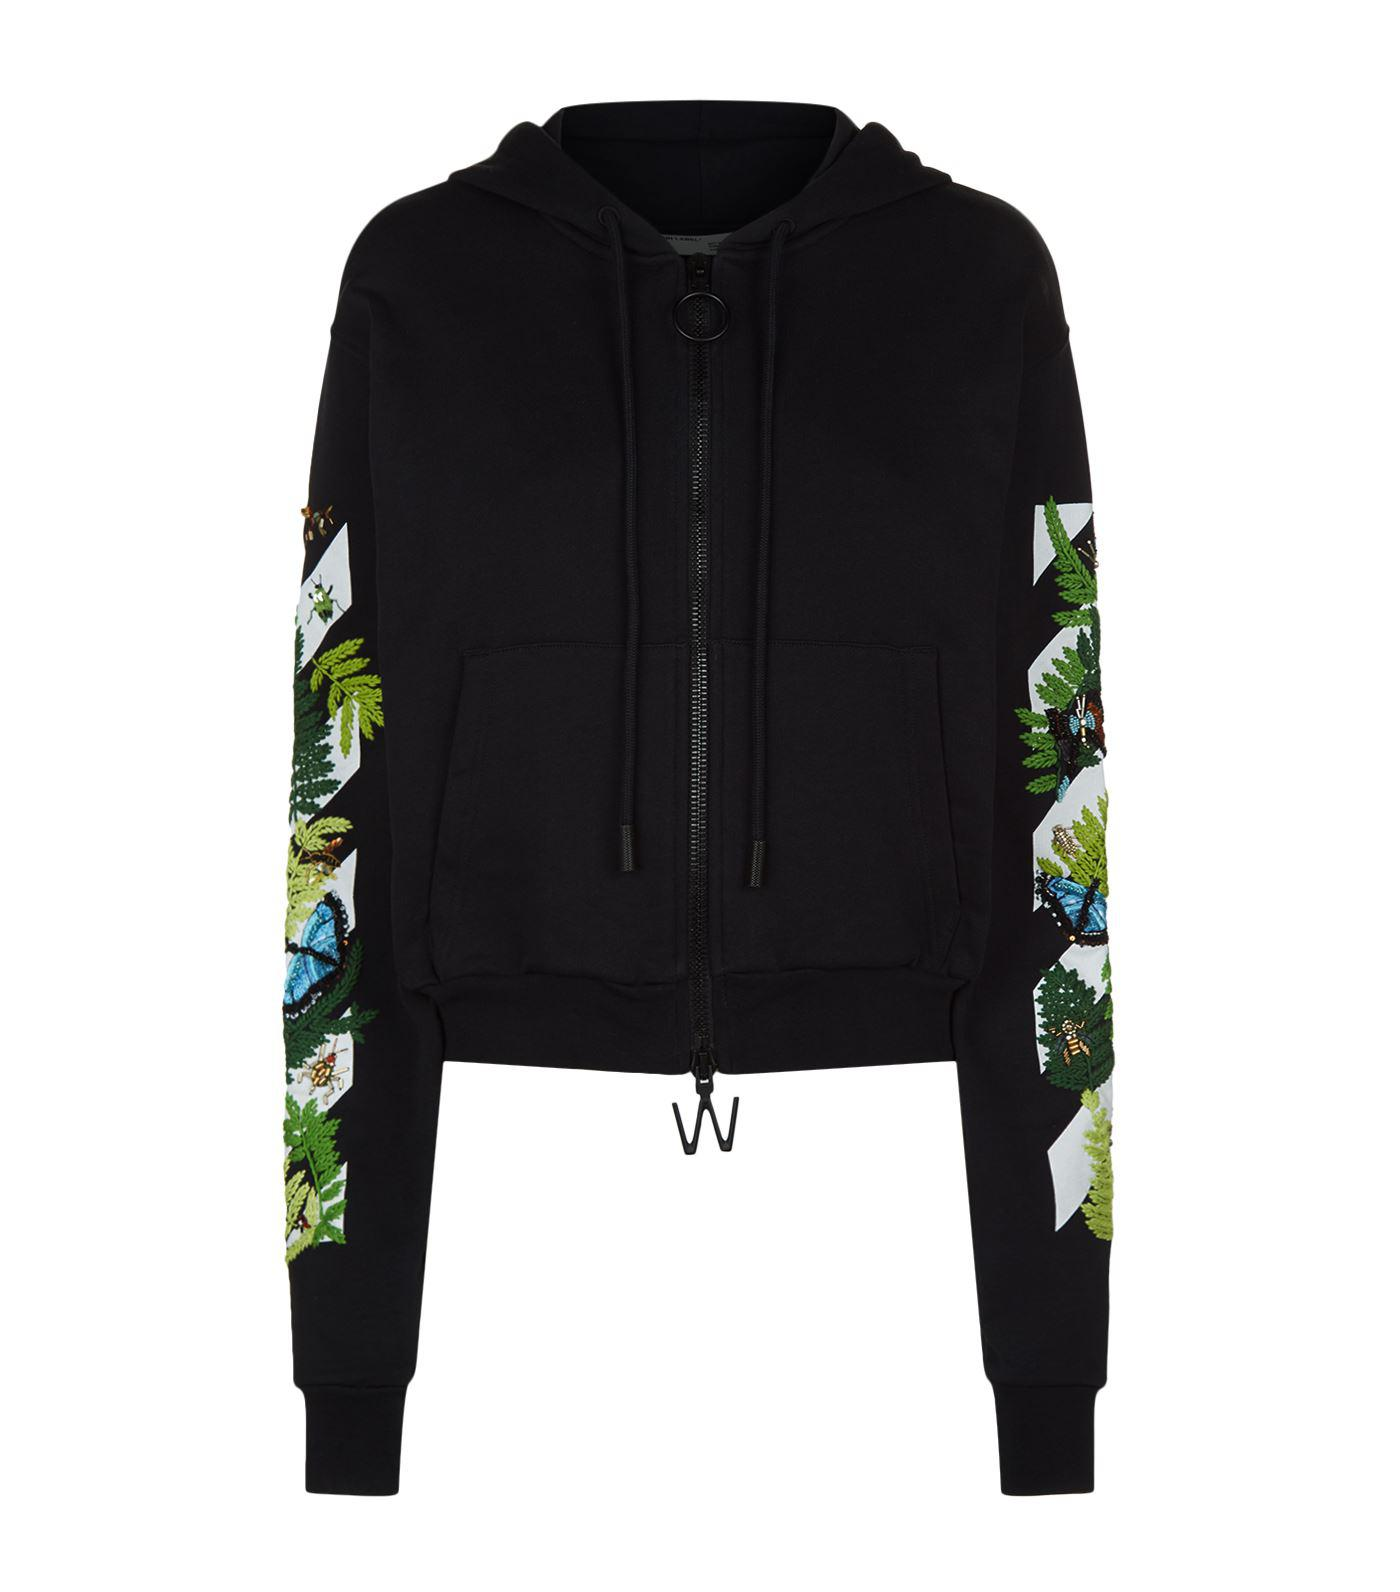 a6e84d233f078 Lyst - Off-white c o virgil abloh Fern Embellished Hoodie